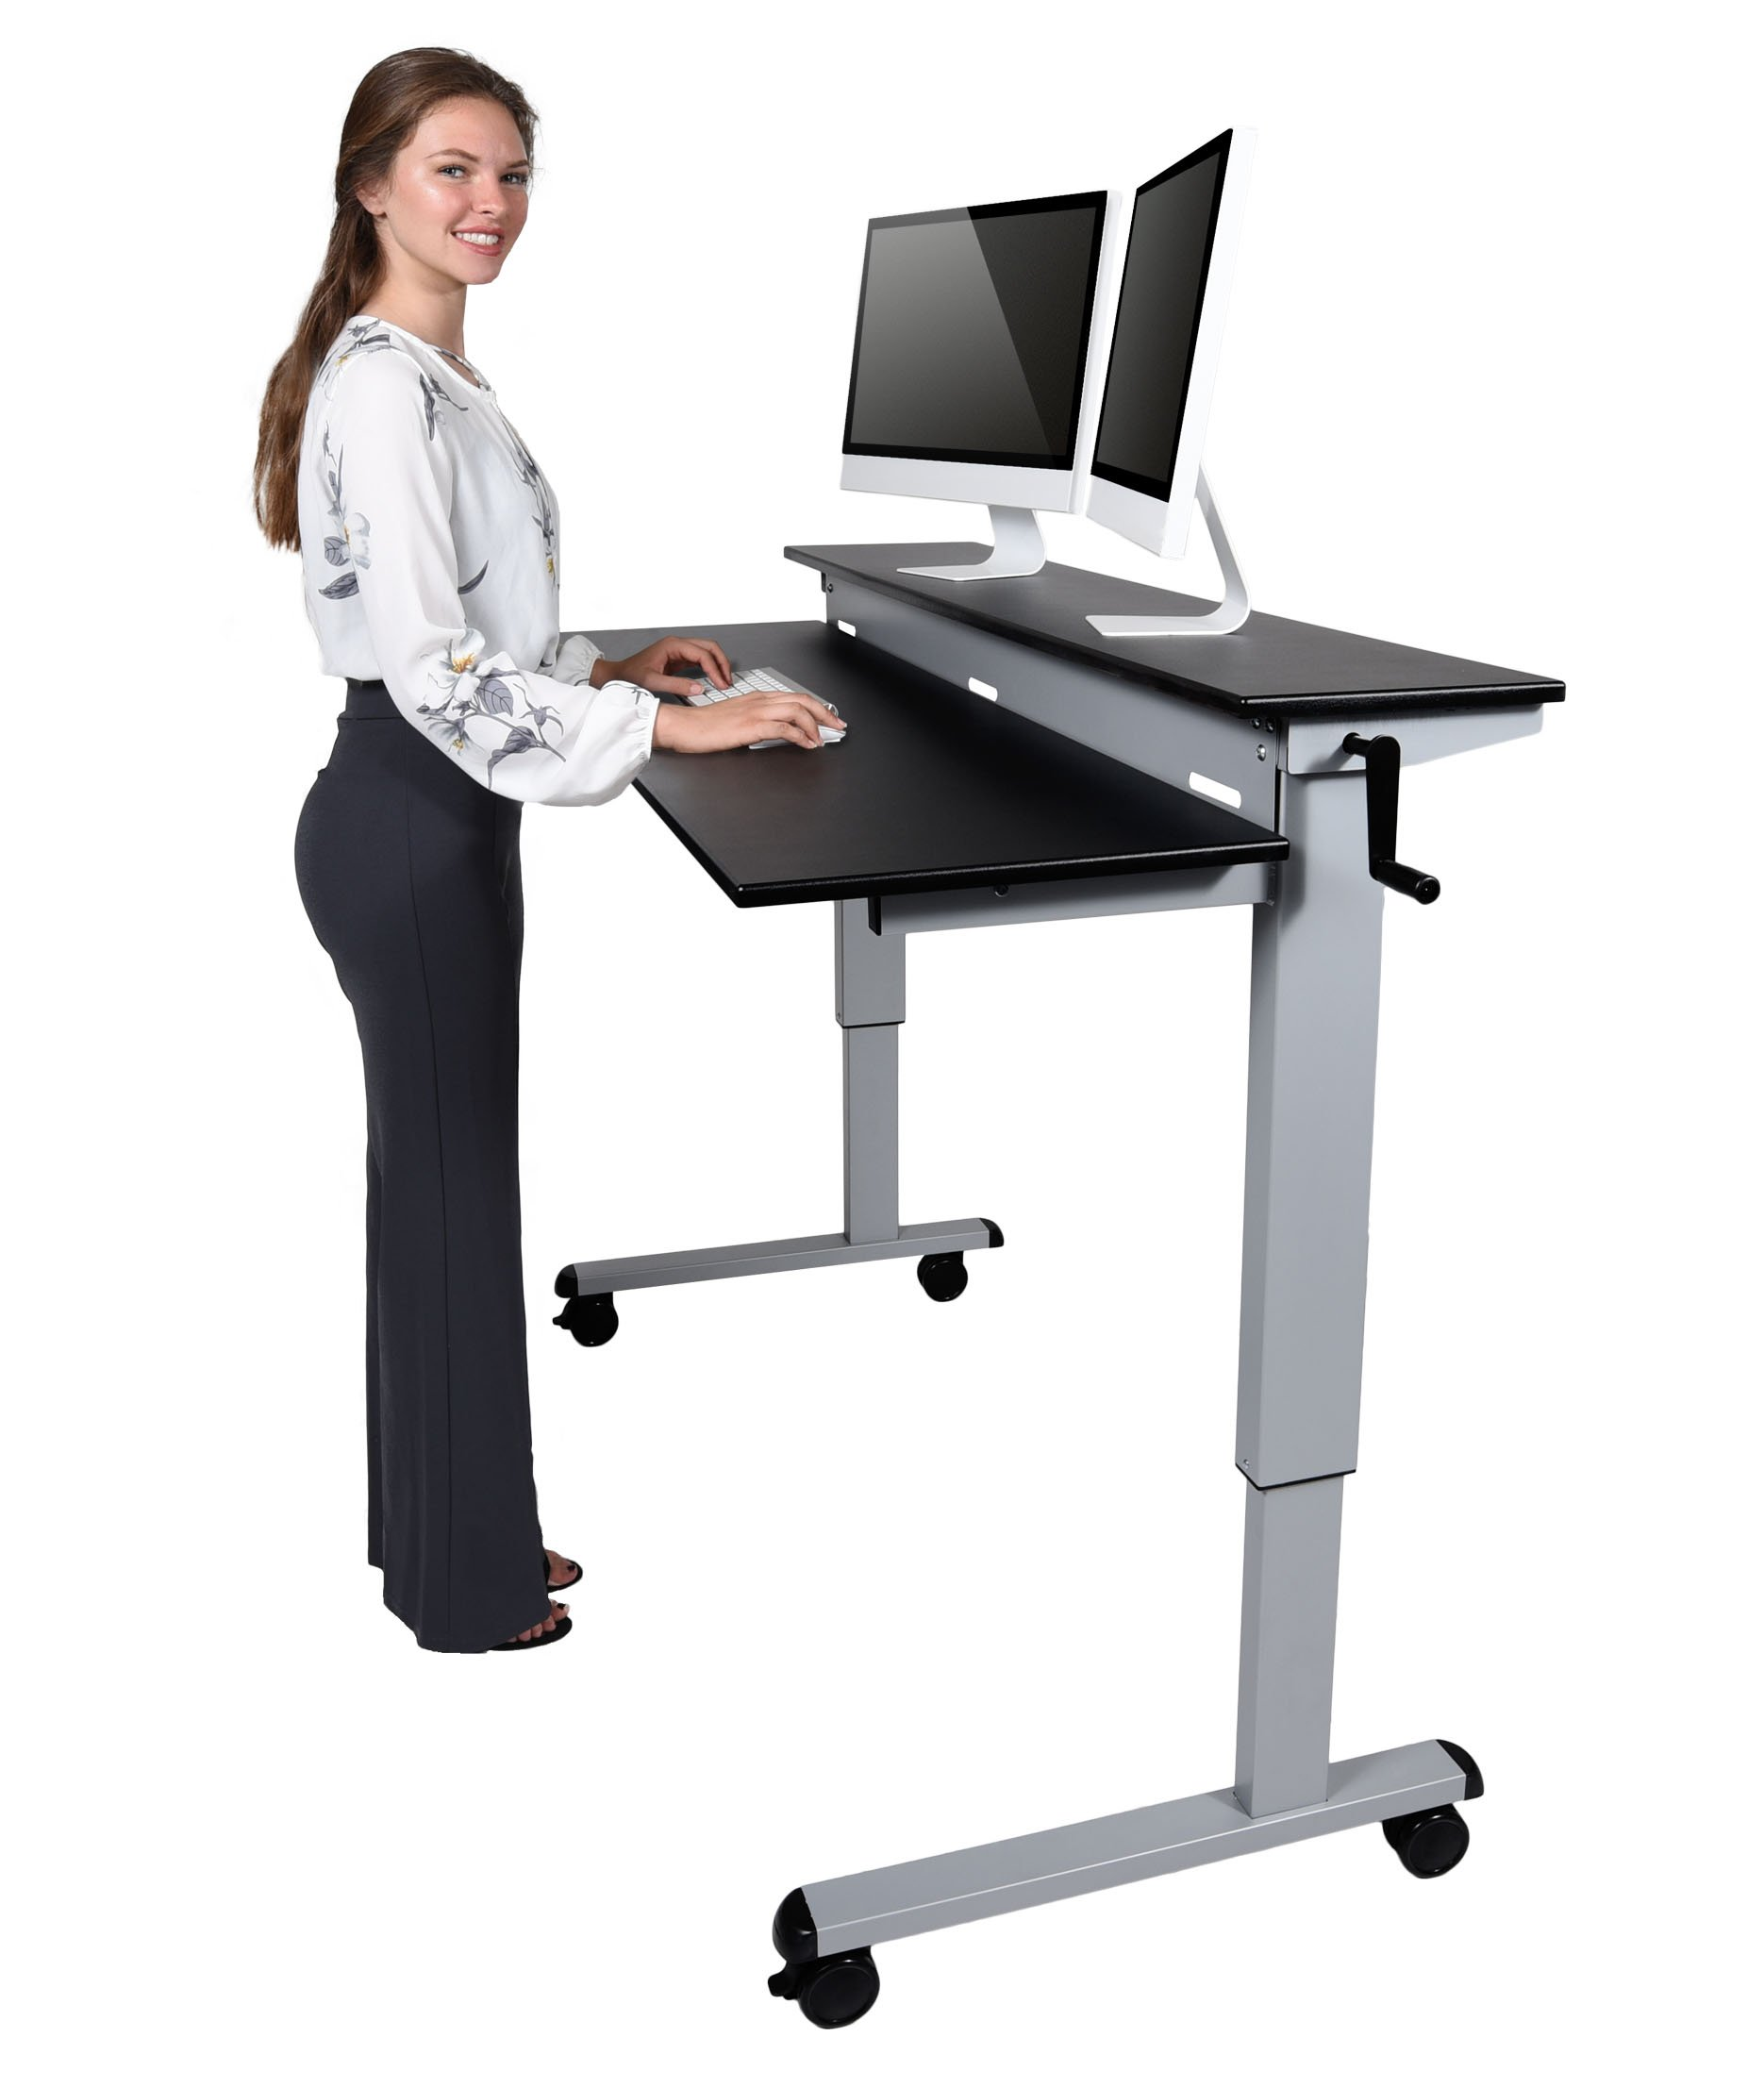 Crank Adjustable Sit to Stand Up Desk with Heavy Duty Steel Frame (60'', Silver Frame/Black Top)